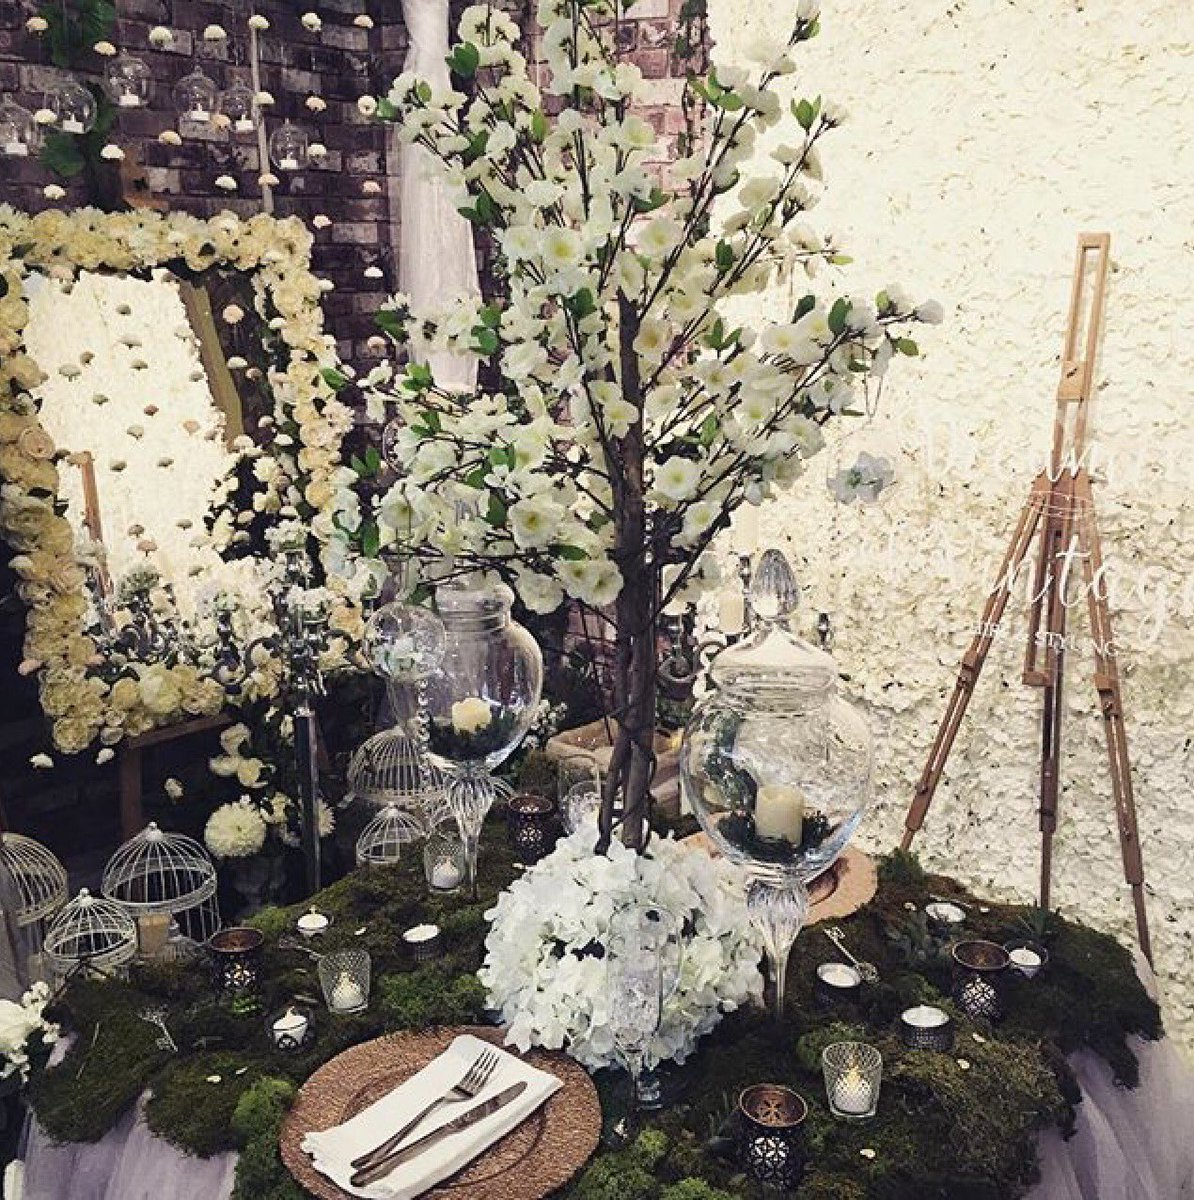 We met some super talented #Wedding #Suppliers at the @nationalwedding show @OhlalaLtd @DOVprophire @initiallylondon @LadySummerSkye<br>http://pic.twitter.com/e8A0Ojddpc